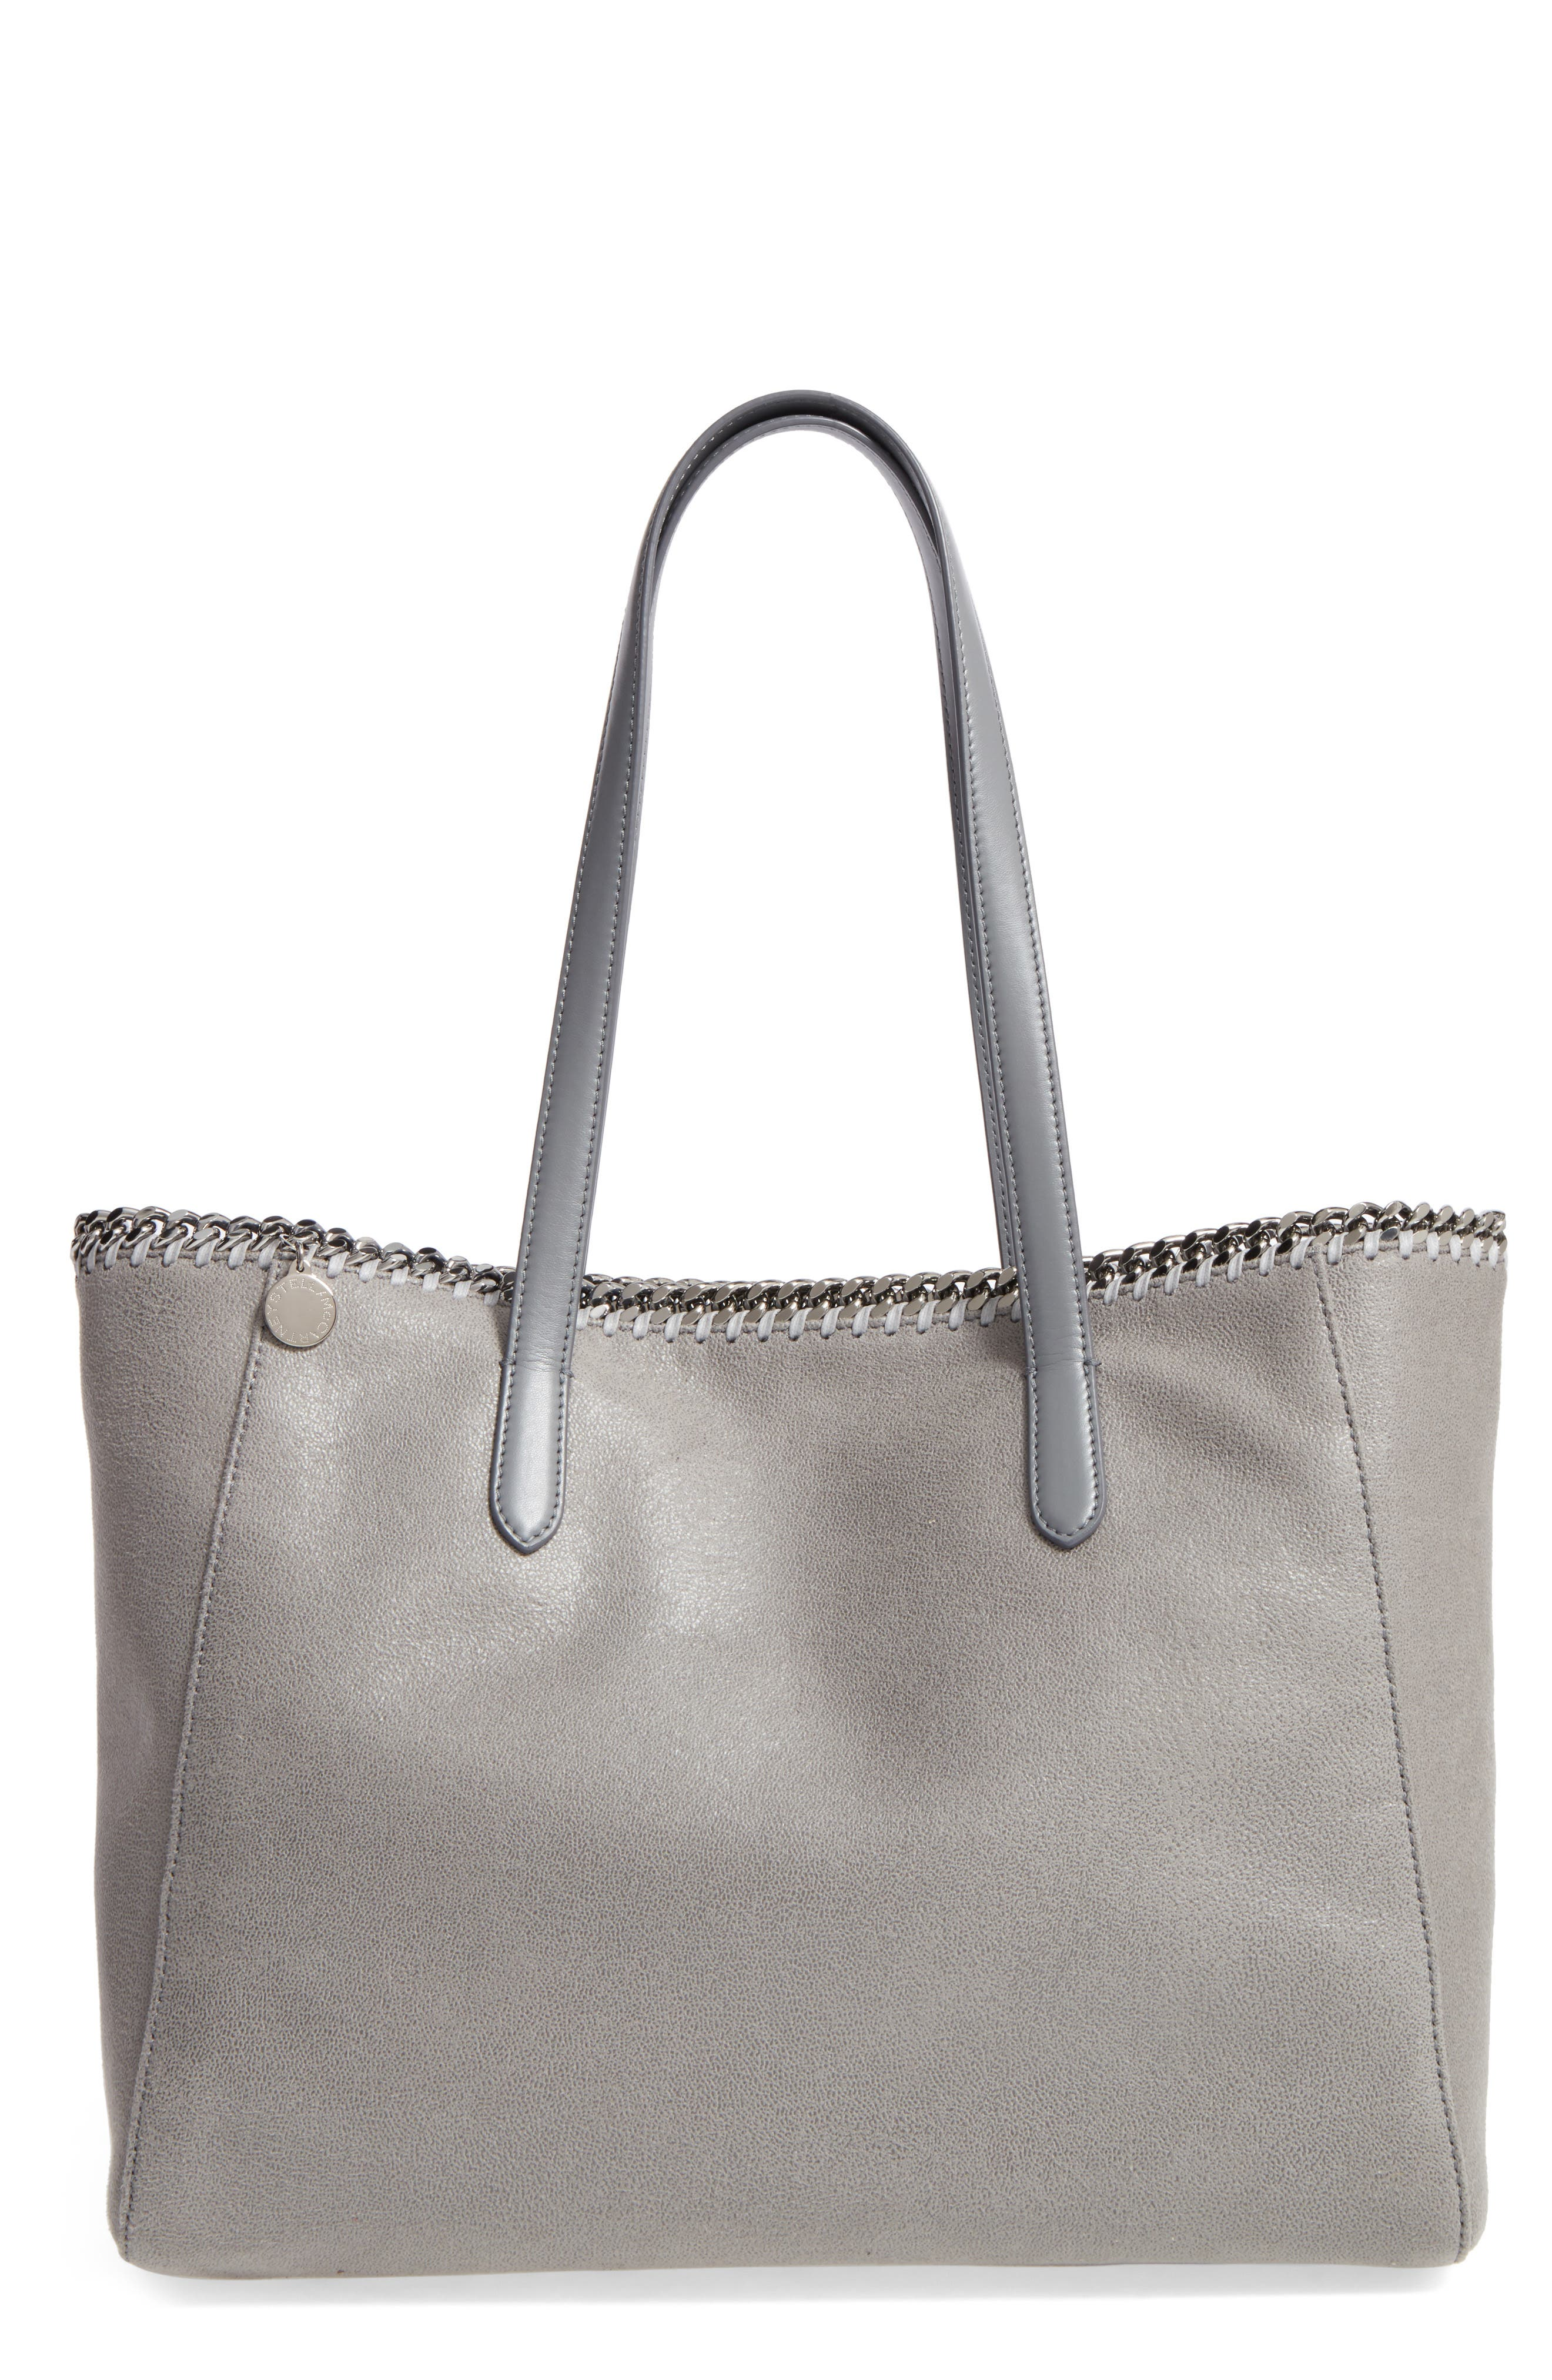 Stella McCartney 'Falabella - Shaggy Deer' Faux Leather Tote